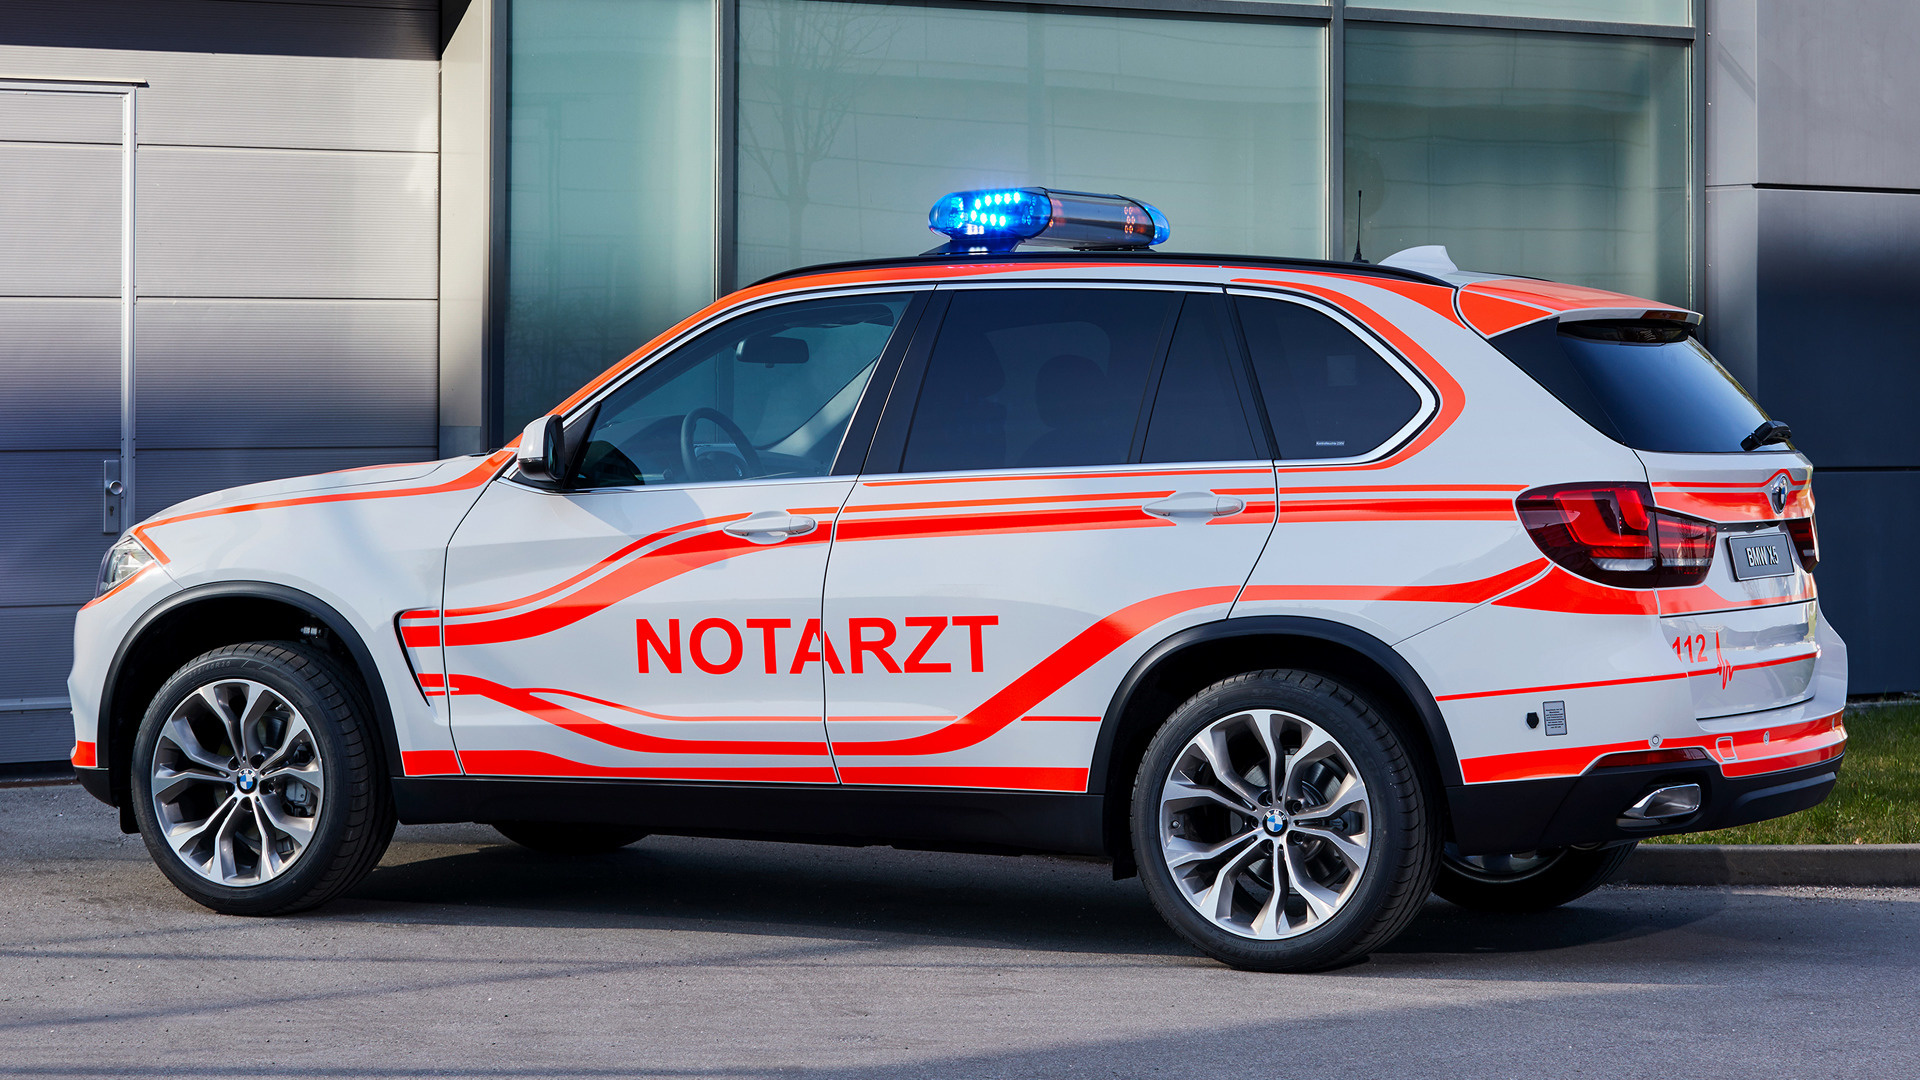 2014 BMW X5 Notarzt - Wallpapers and HD Images | Car Pixel